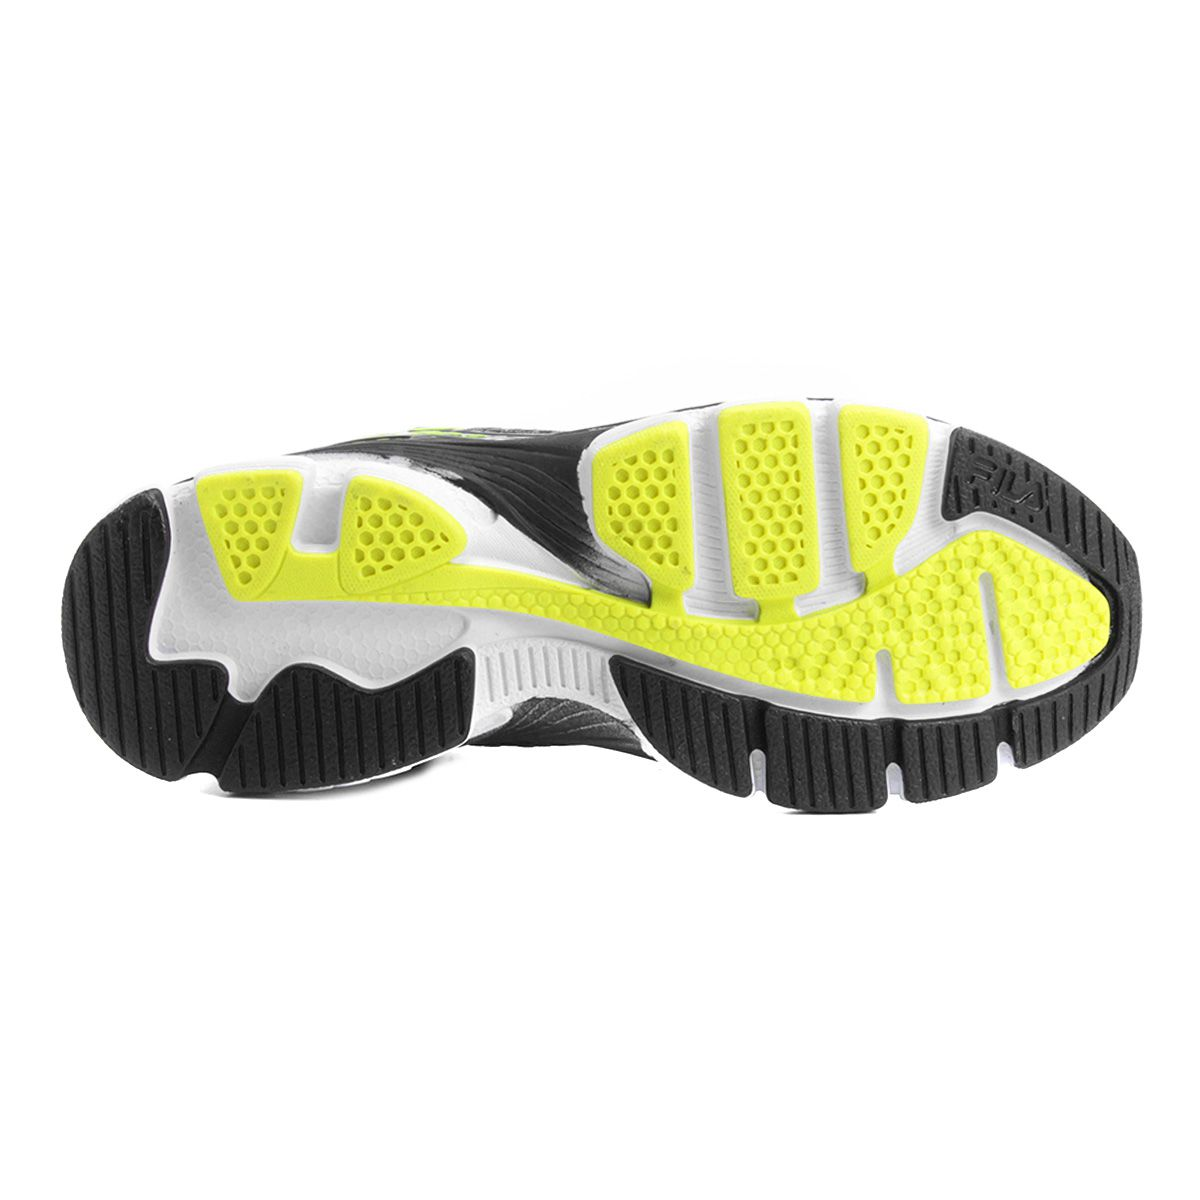 Tenis Fila Striking 3.0 Running Masculino Grafite